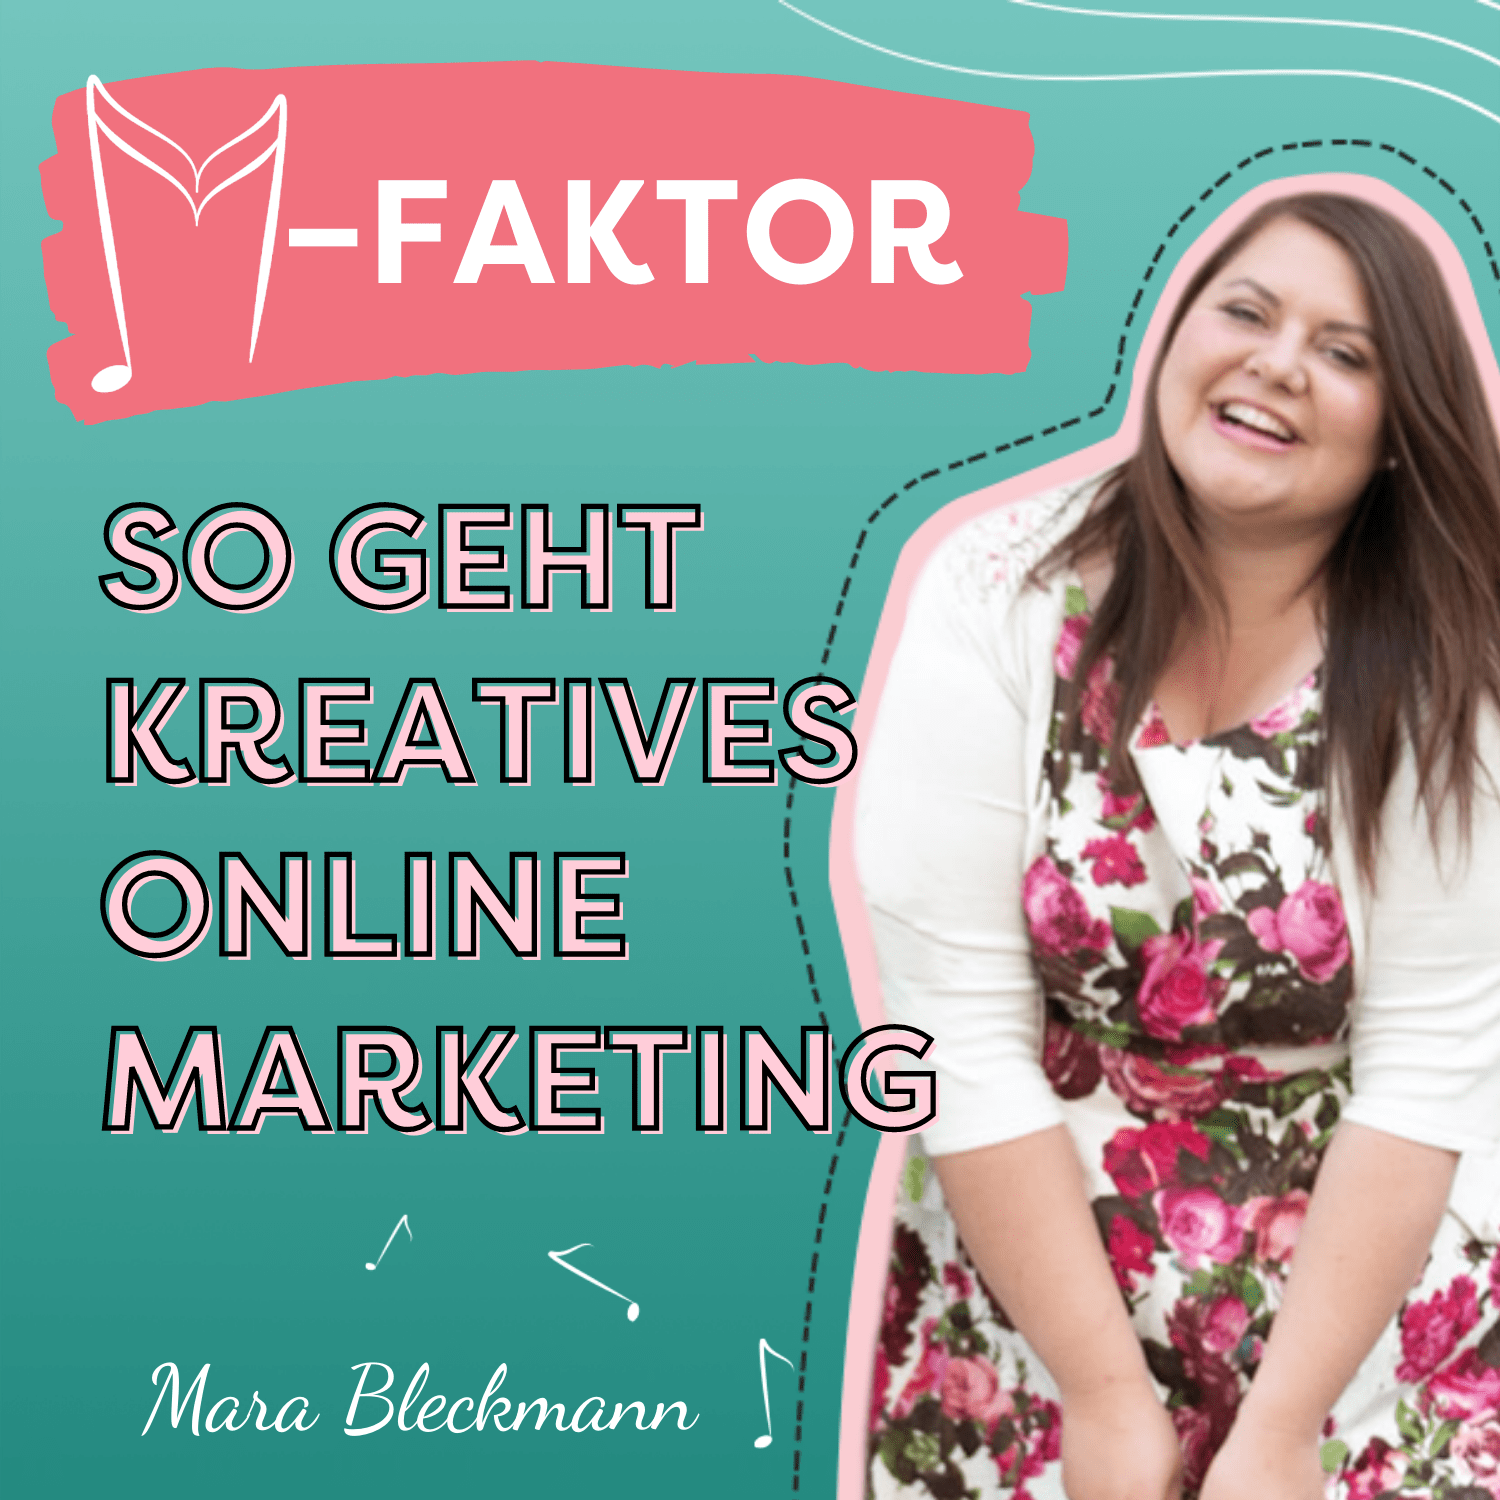 Der M-Faktor: So geht kreatives Online Marketing